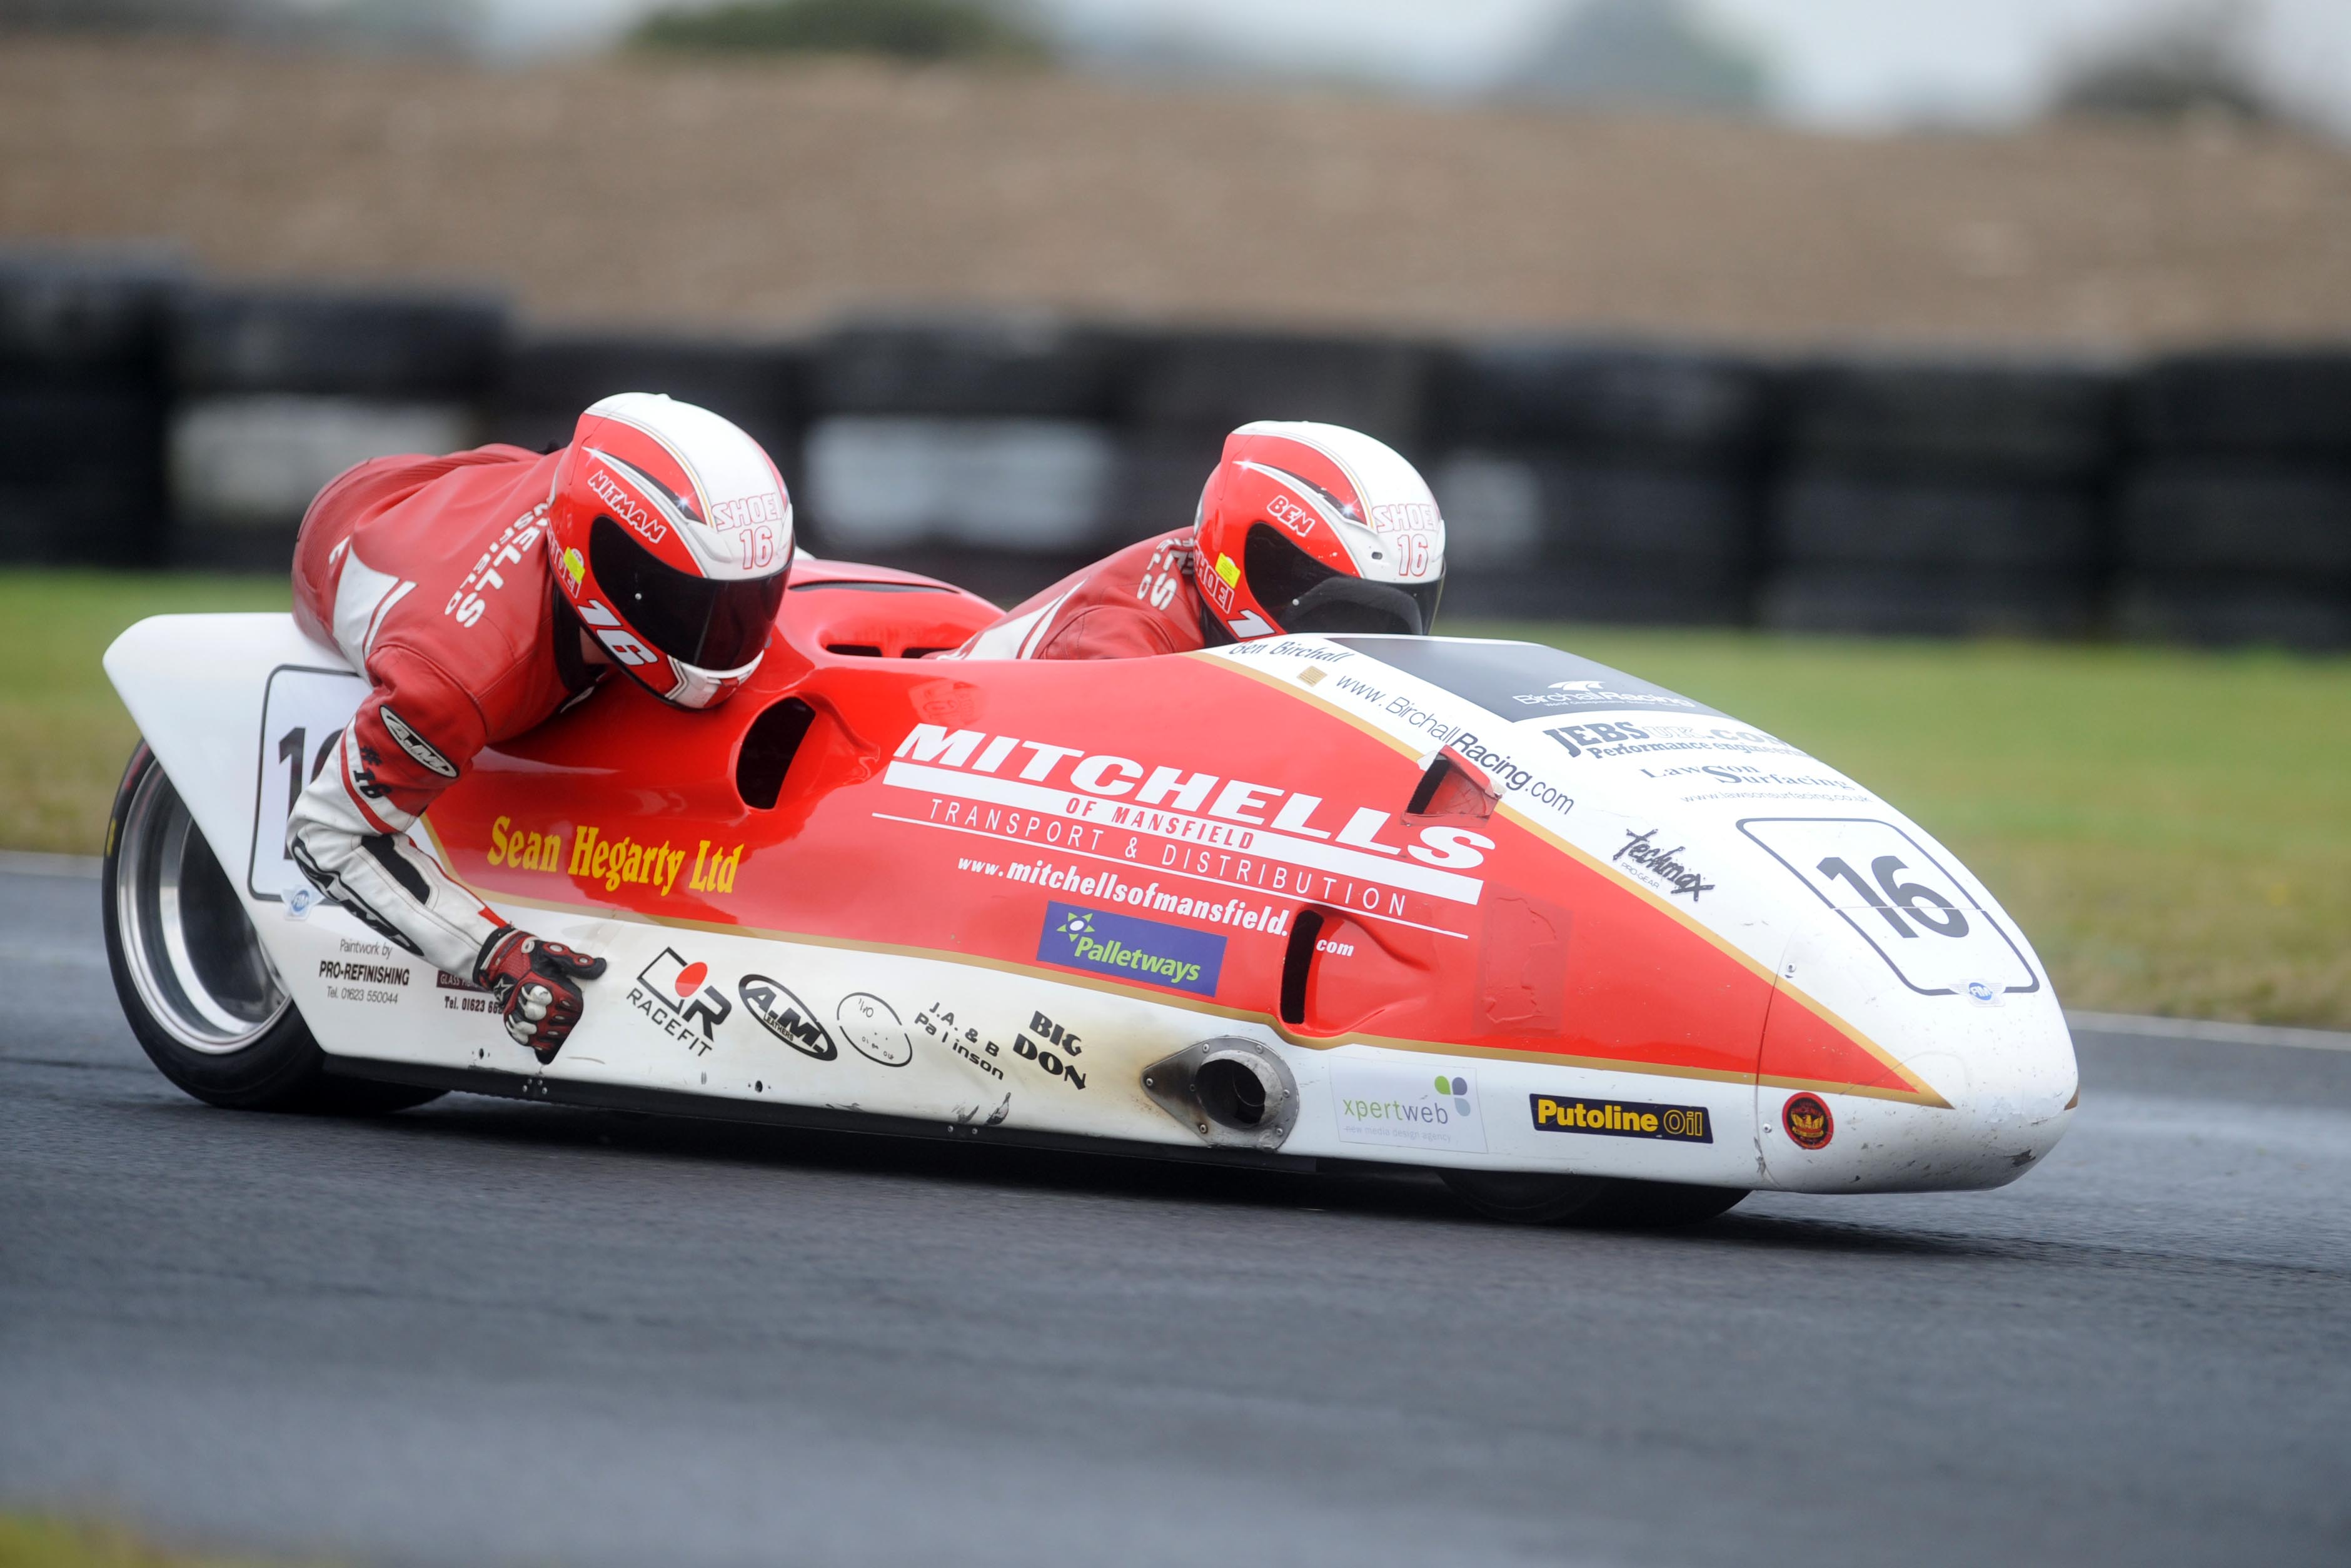 Birchall Brothers Confirm Sidecar Return For The 2011 Isle Of Man Tt Tt2011 Sidecars Worlds 1 Website